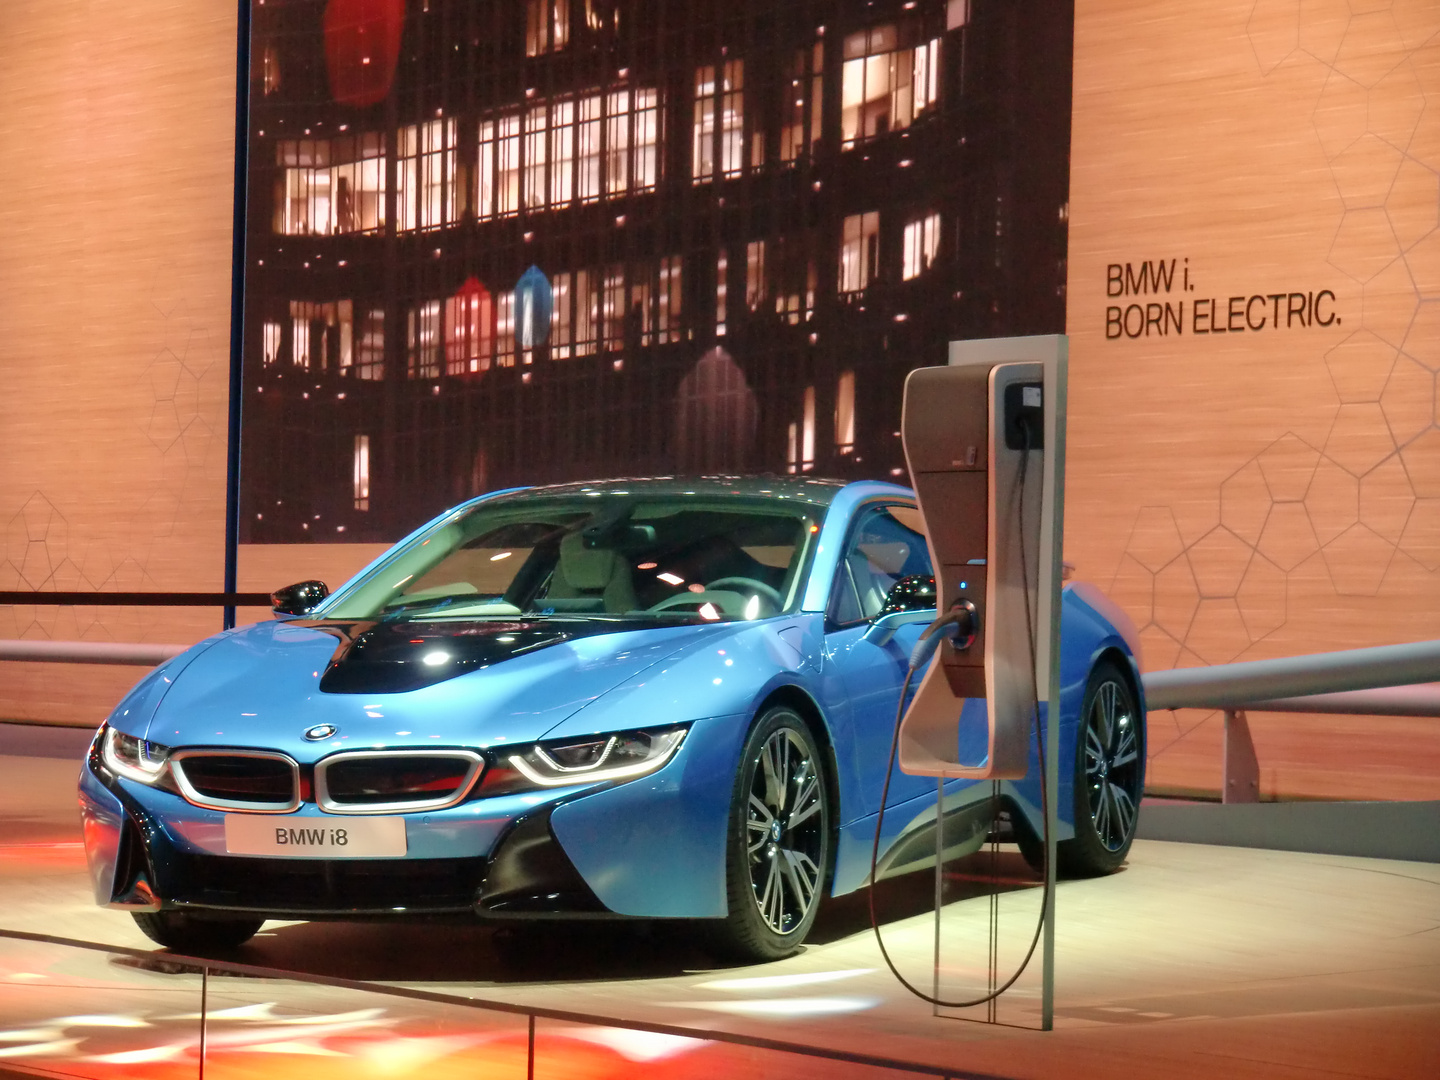 IAA 2013 - BMW i8, born electric